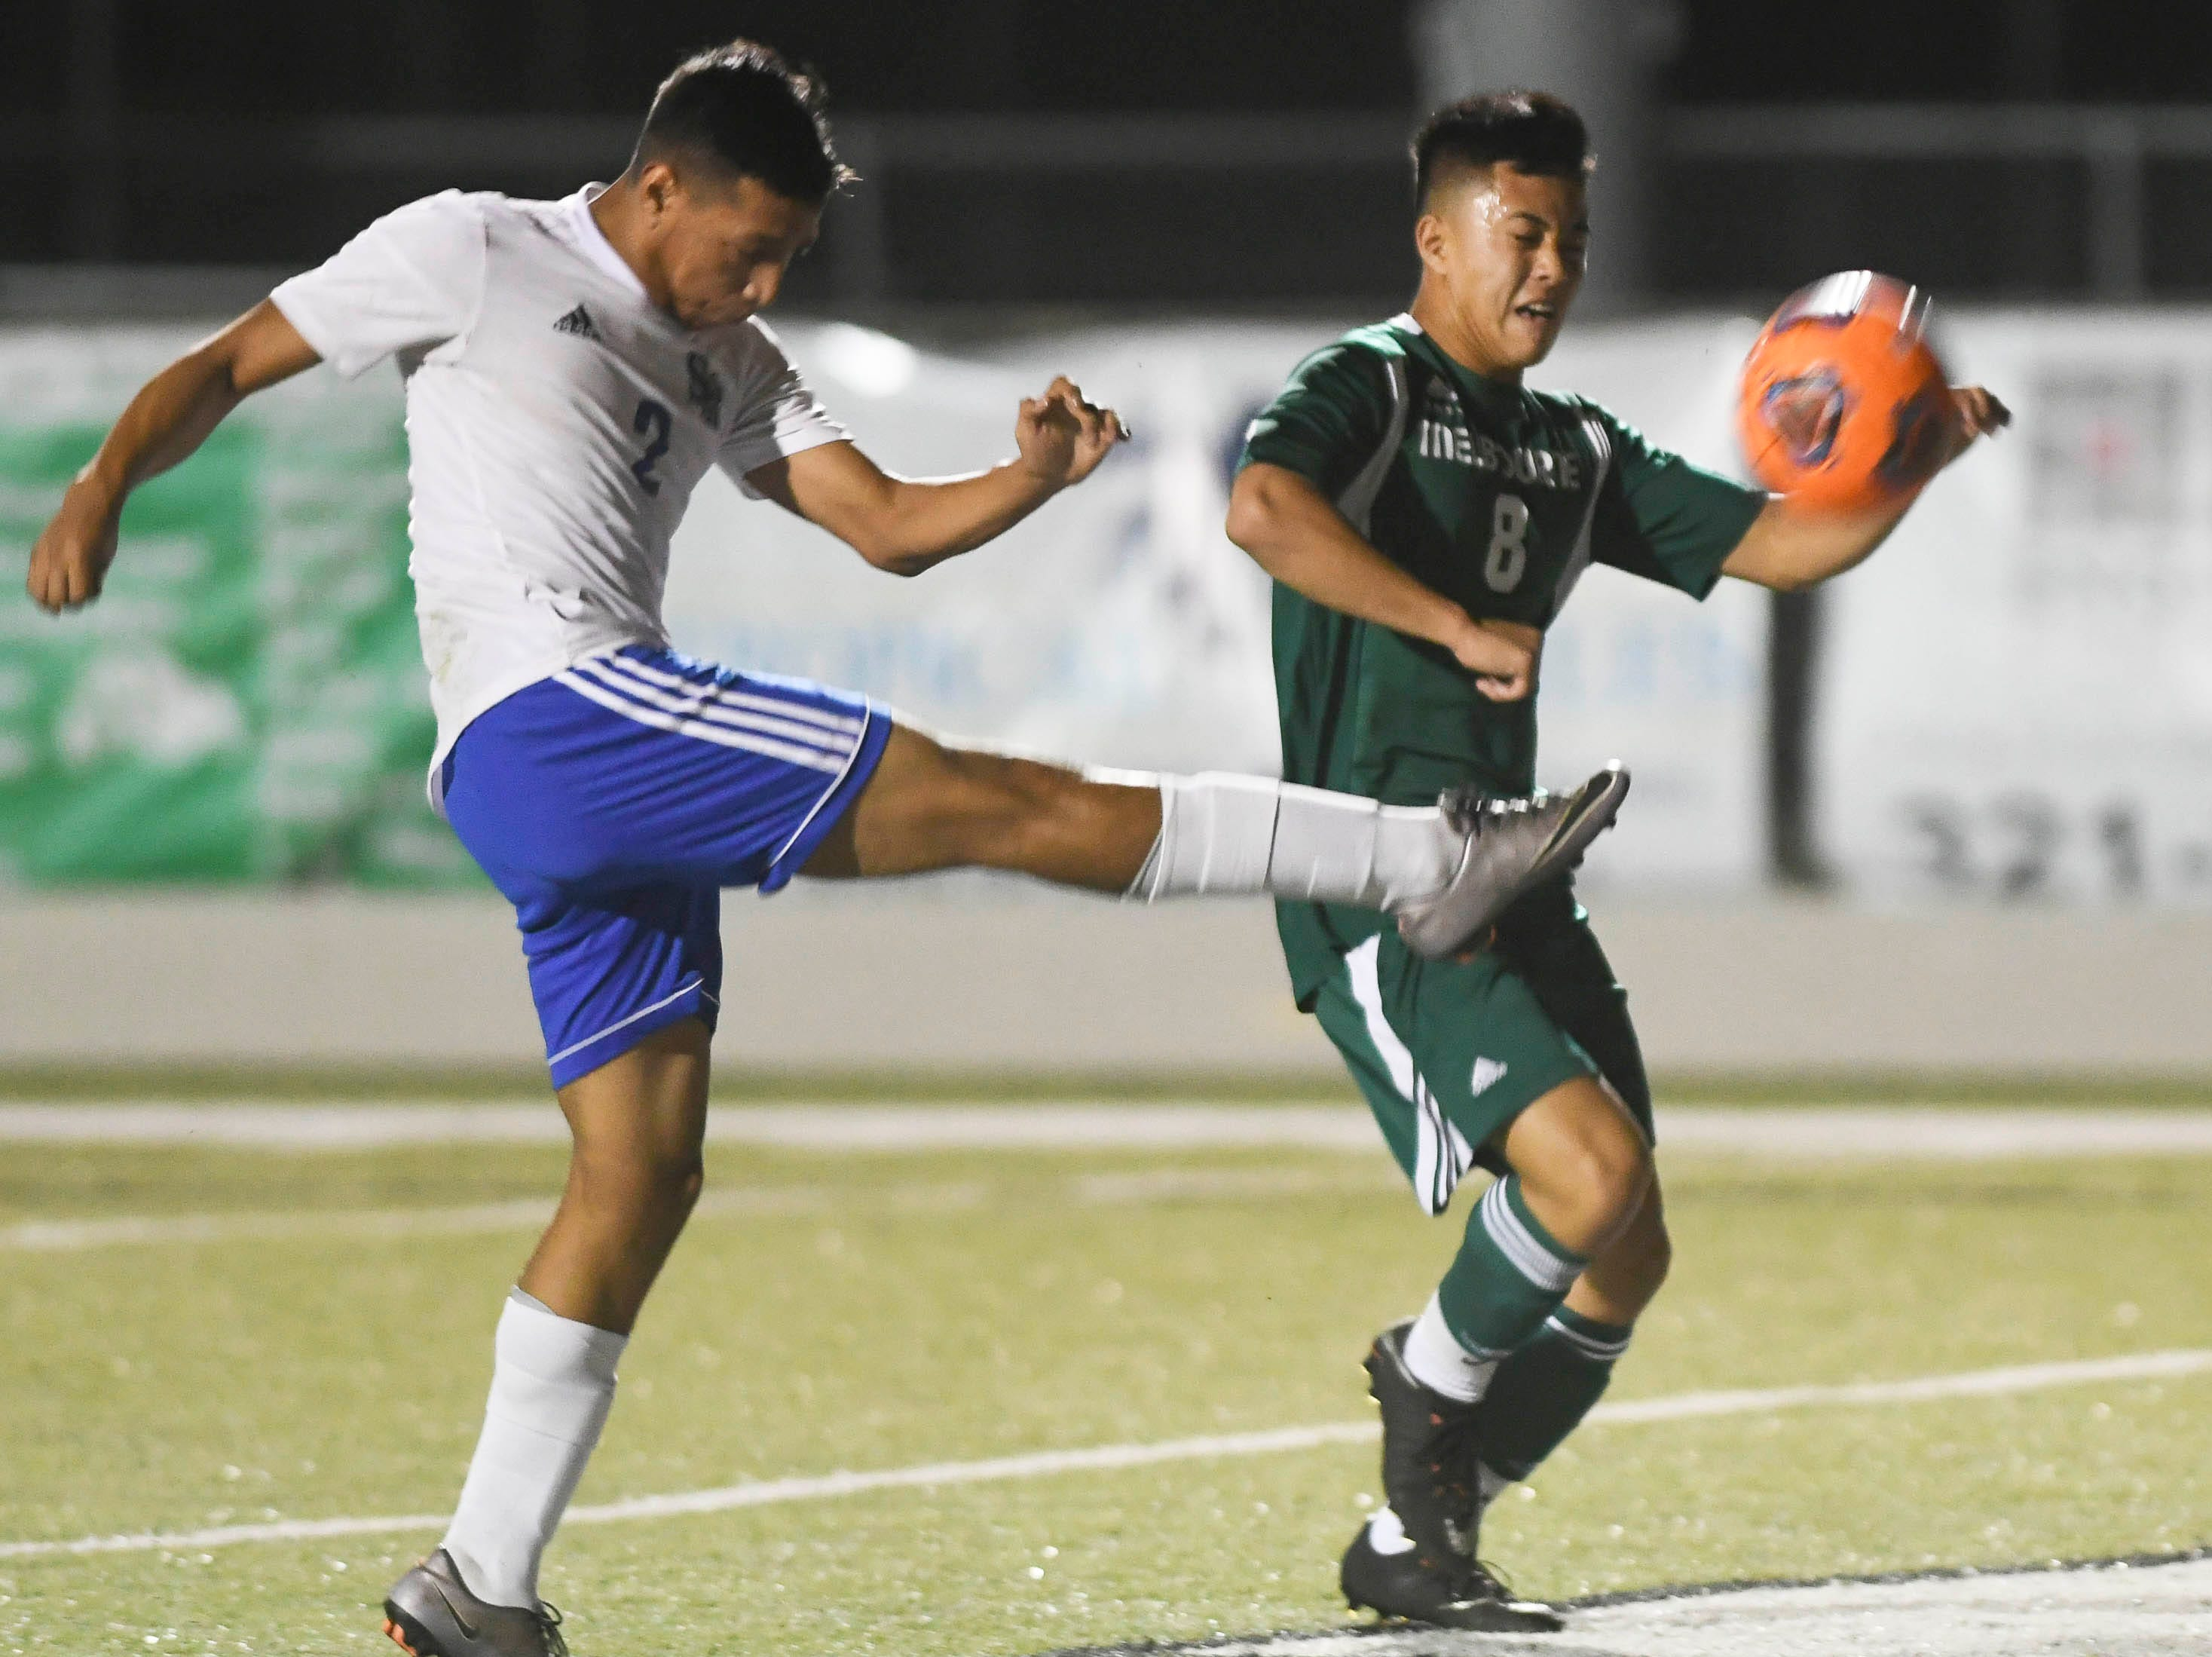 Gilberto Garcia of Sebastian River directs the ball away from Joey Dinh of Melbourne during Friday's game in Melbourne.